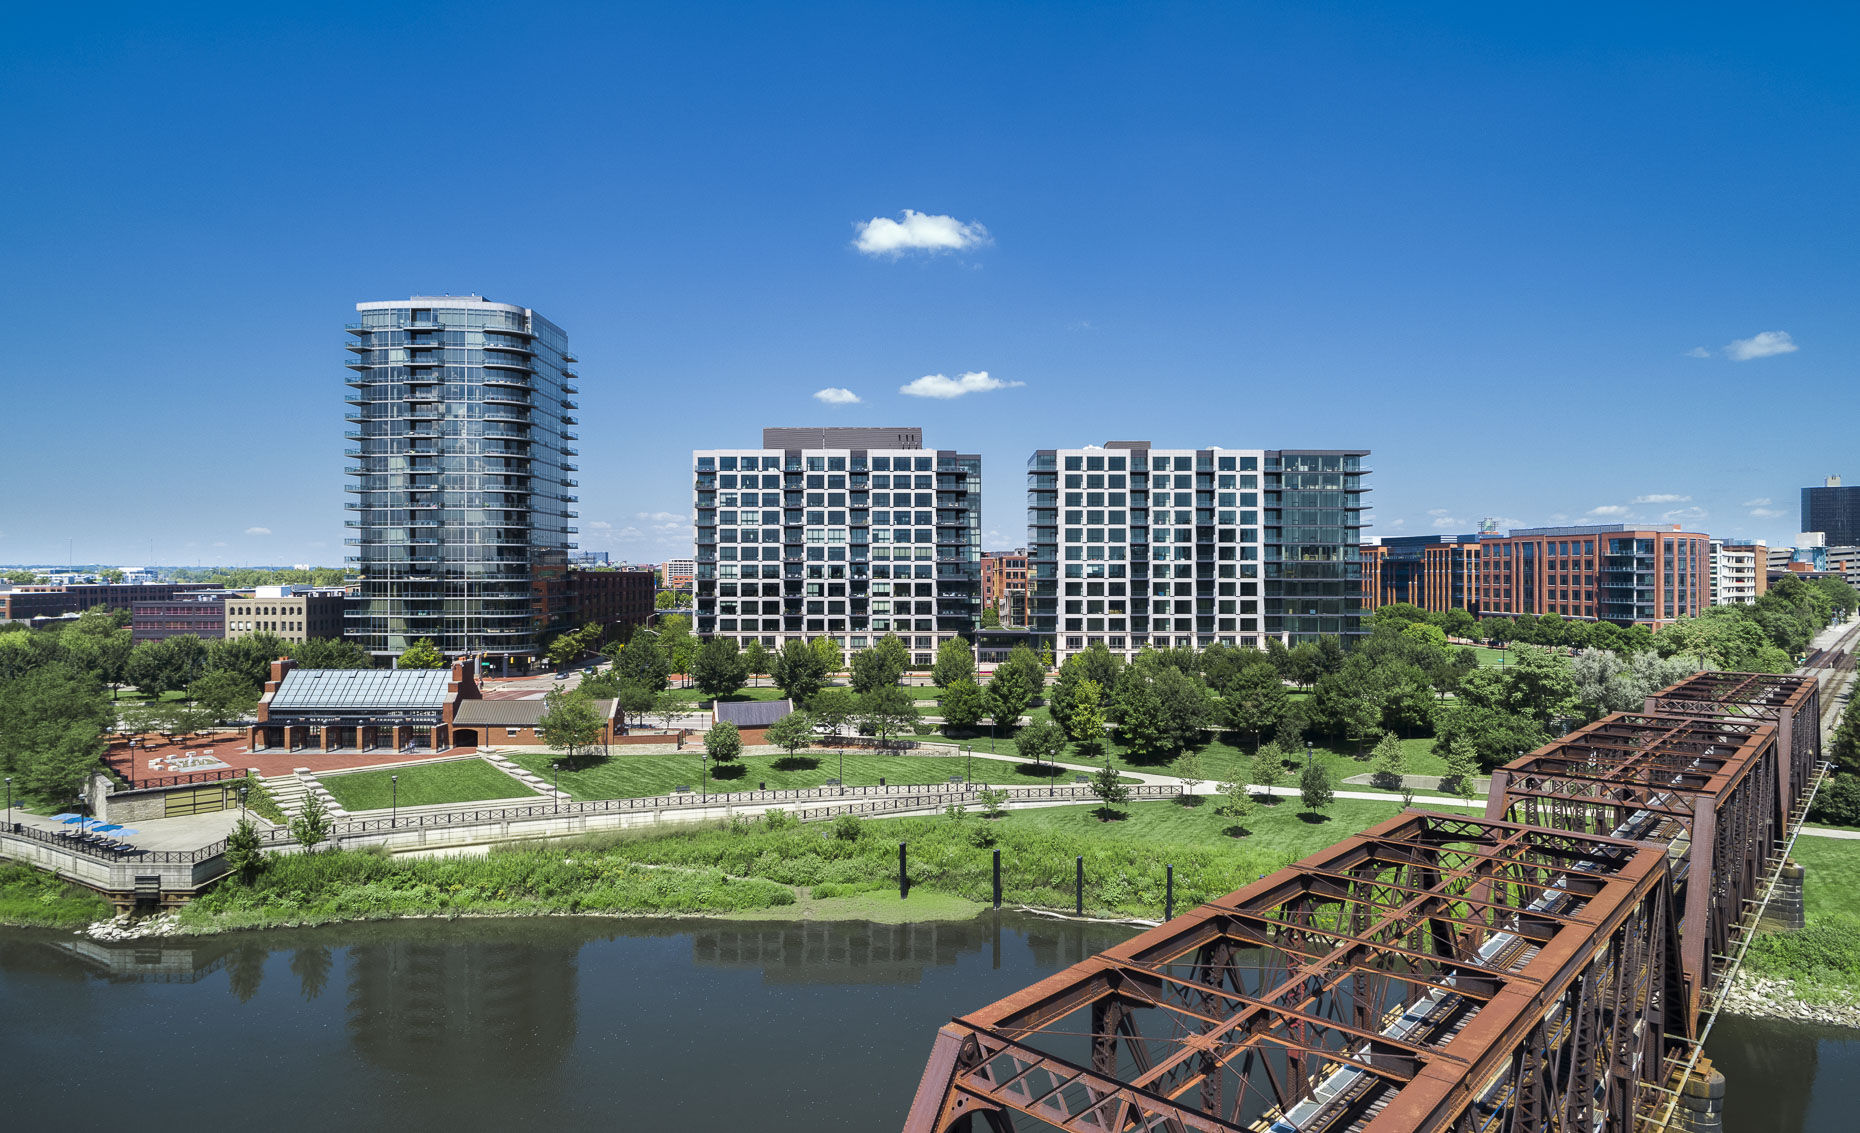 Parks Edge Condominiums by Nationwide Reality Investors photographed by Lauren K Davis based in Columbus, Ohio